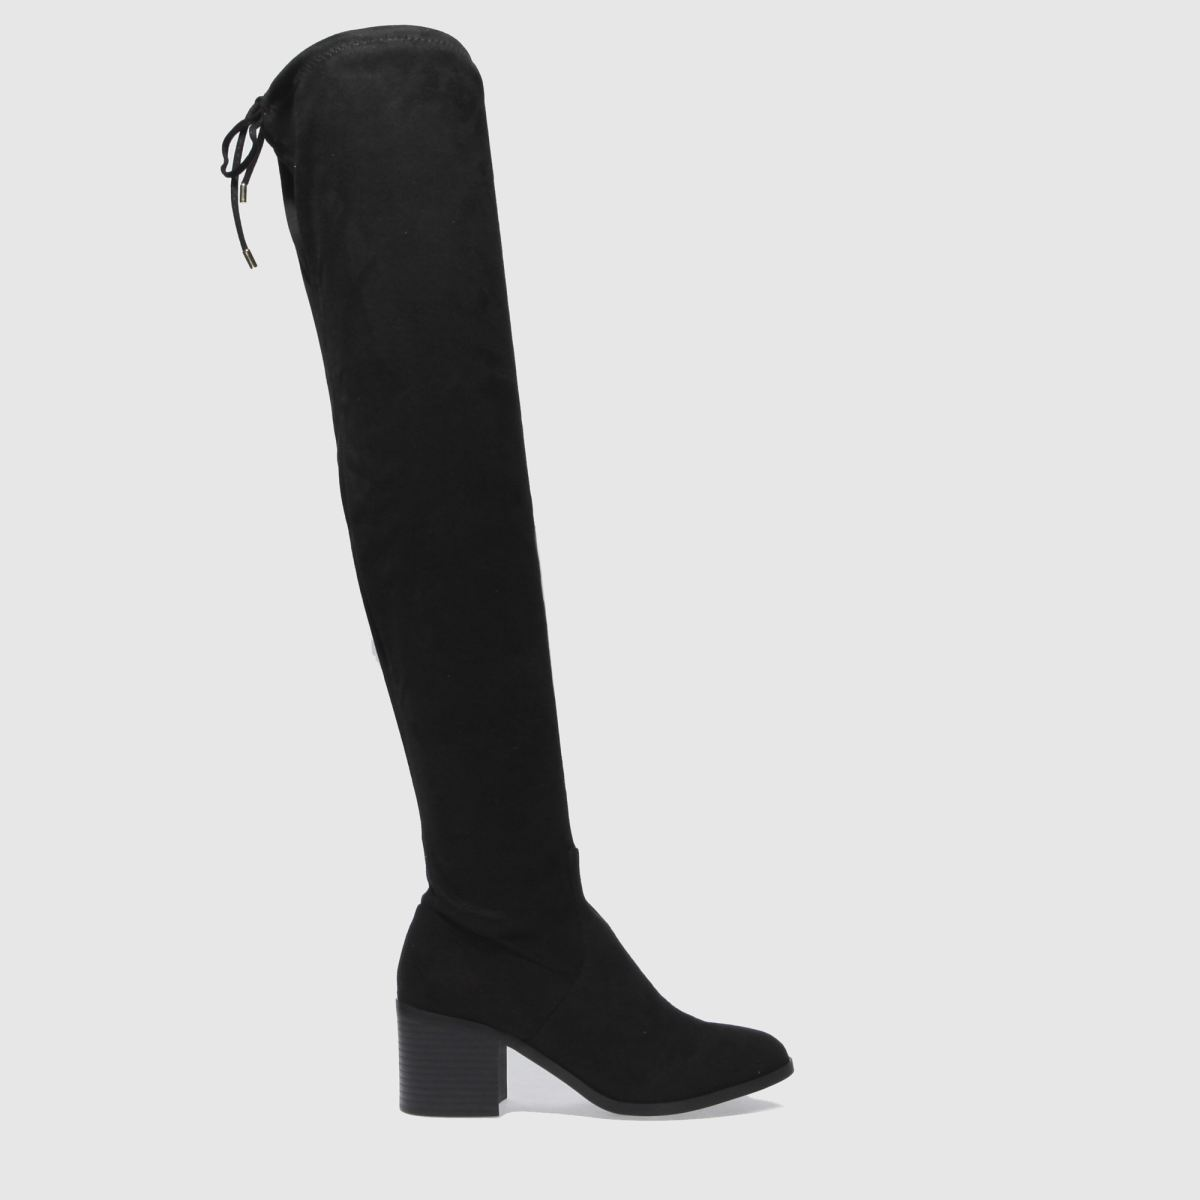 Schuh Black Influence Boots